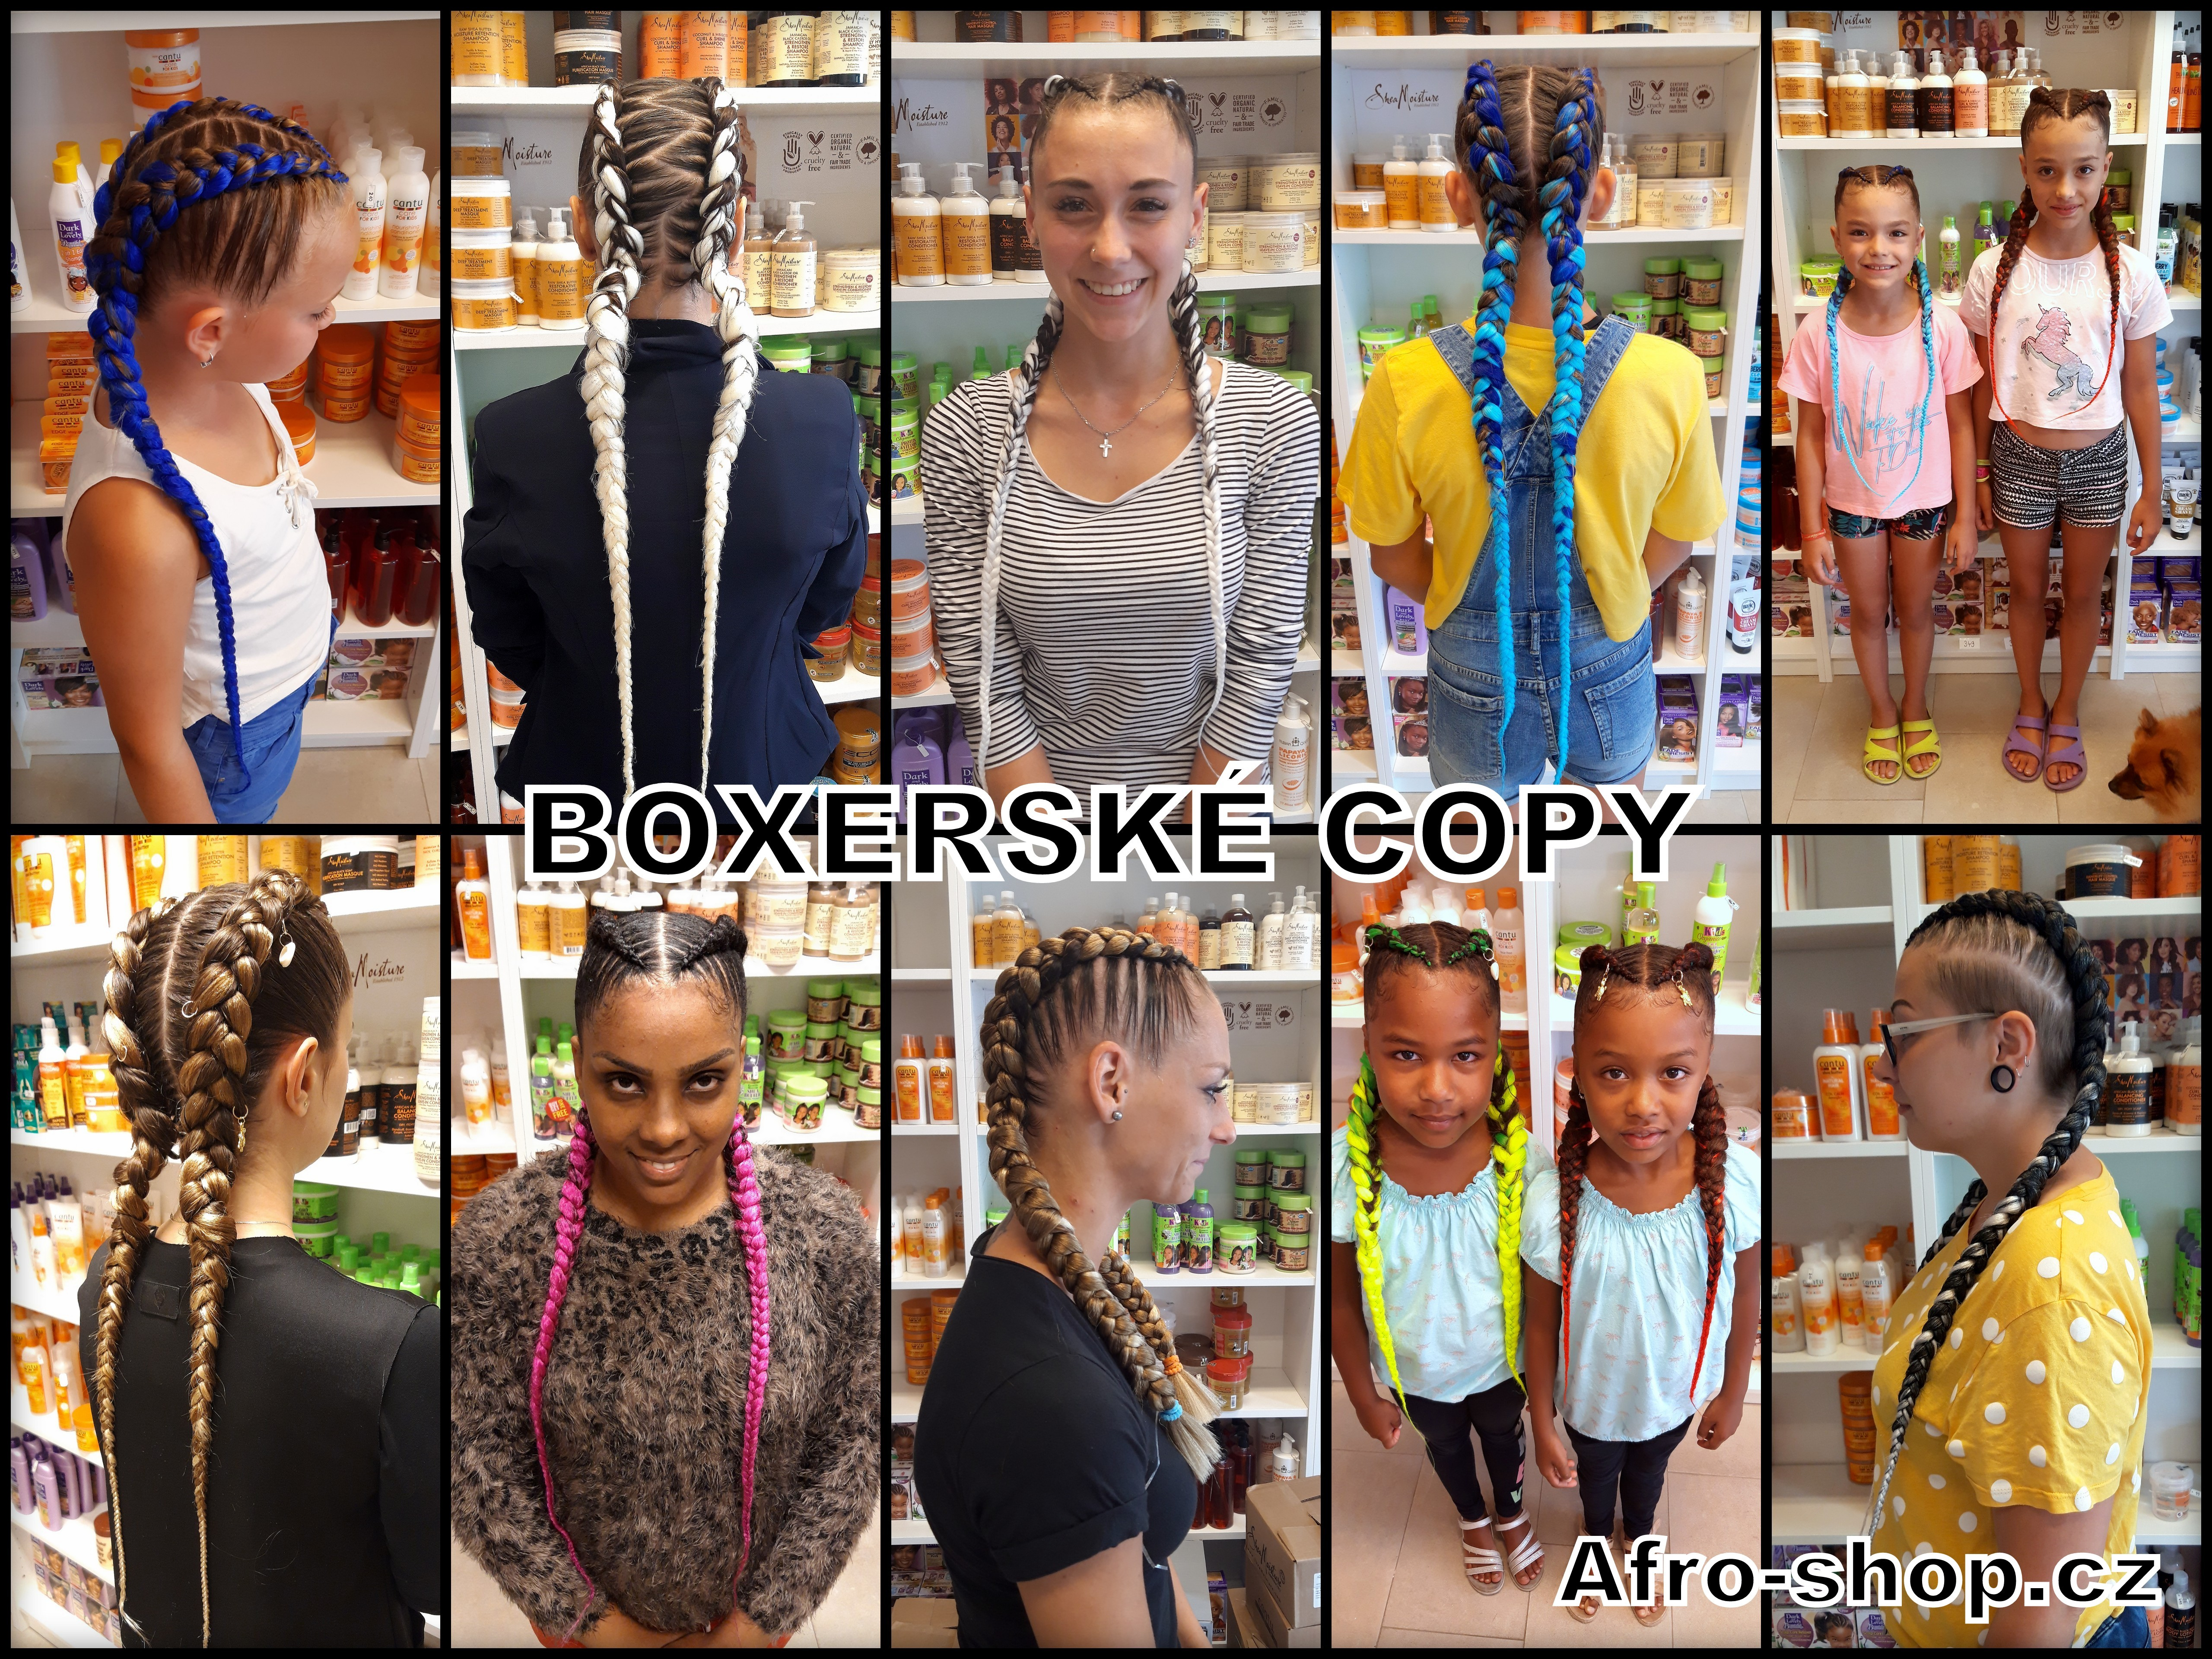 2020_boxerske_copy_afro-shop-cz.jpg